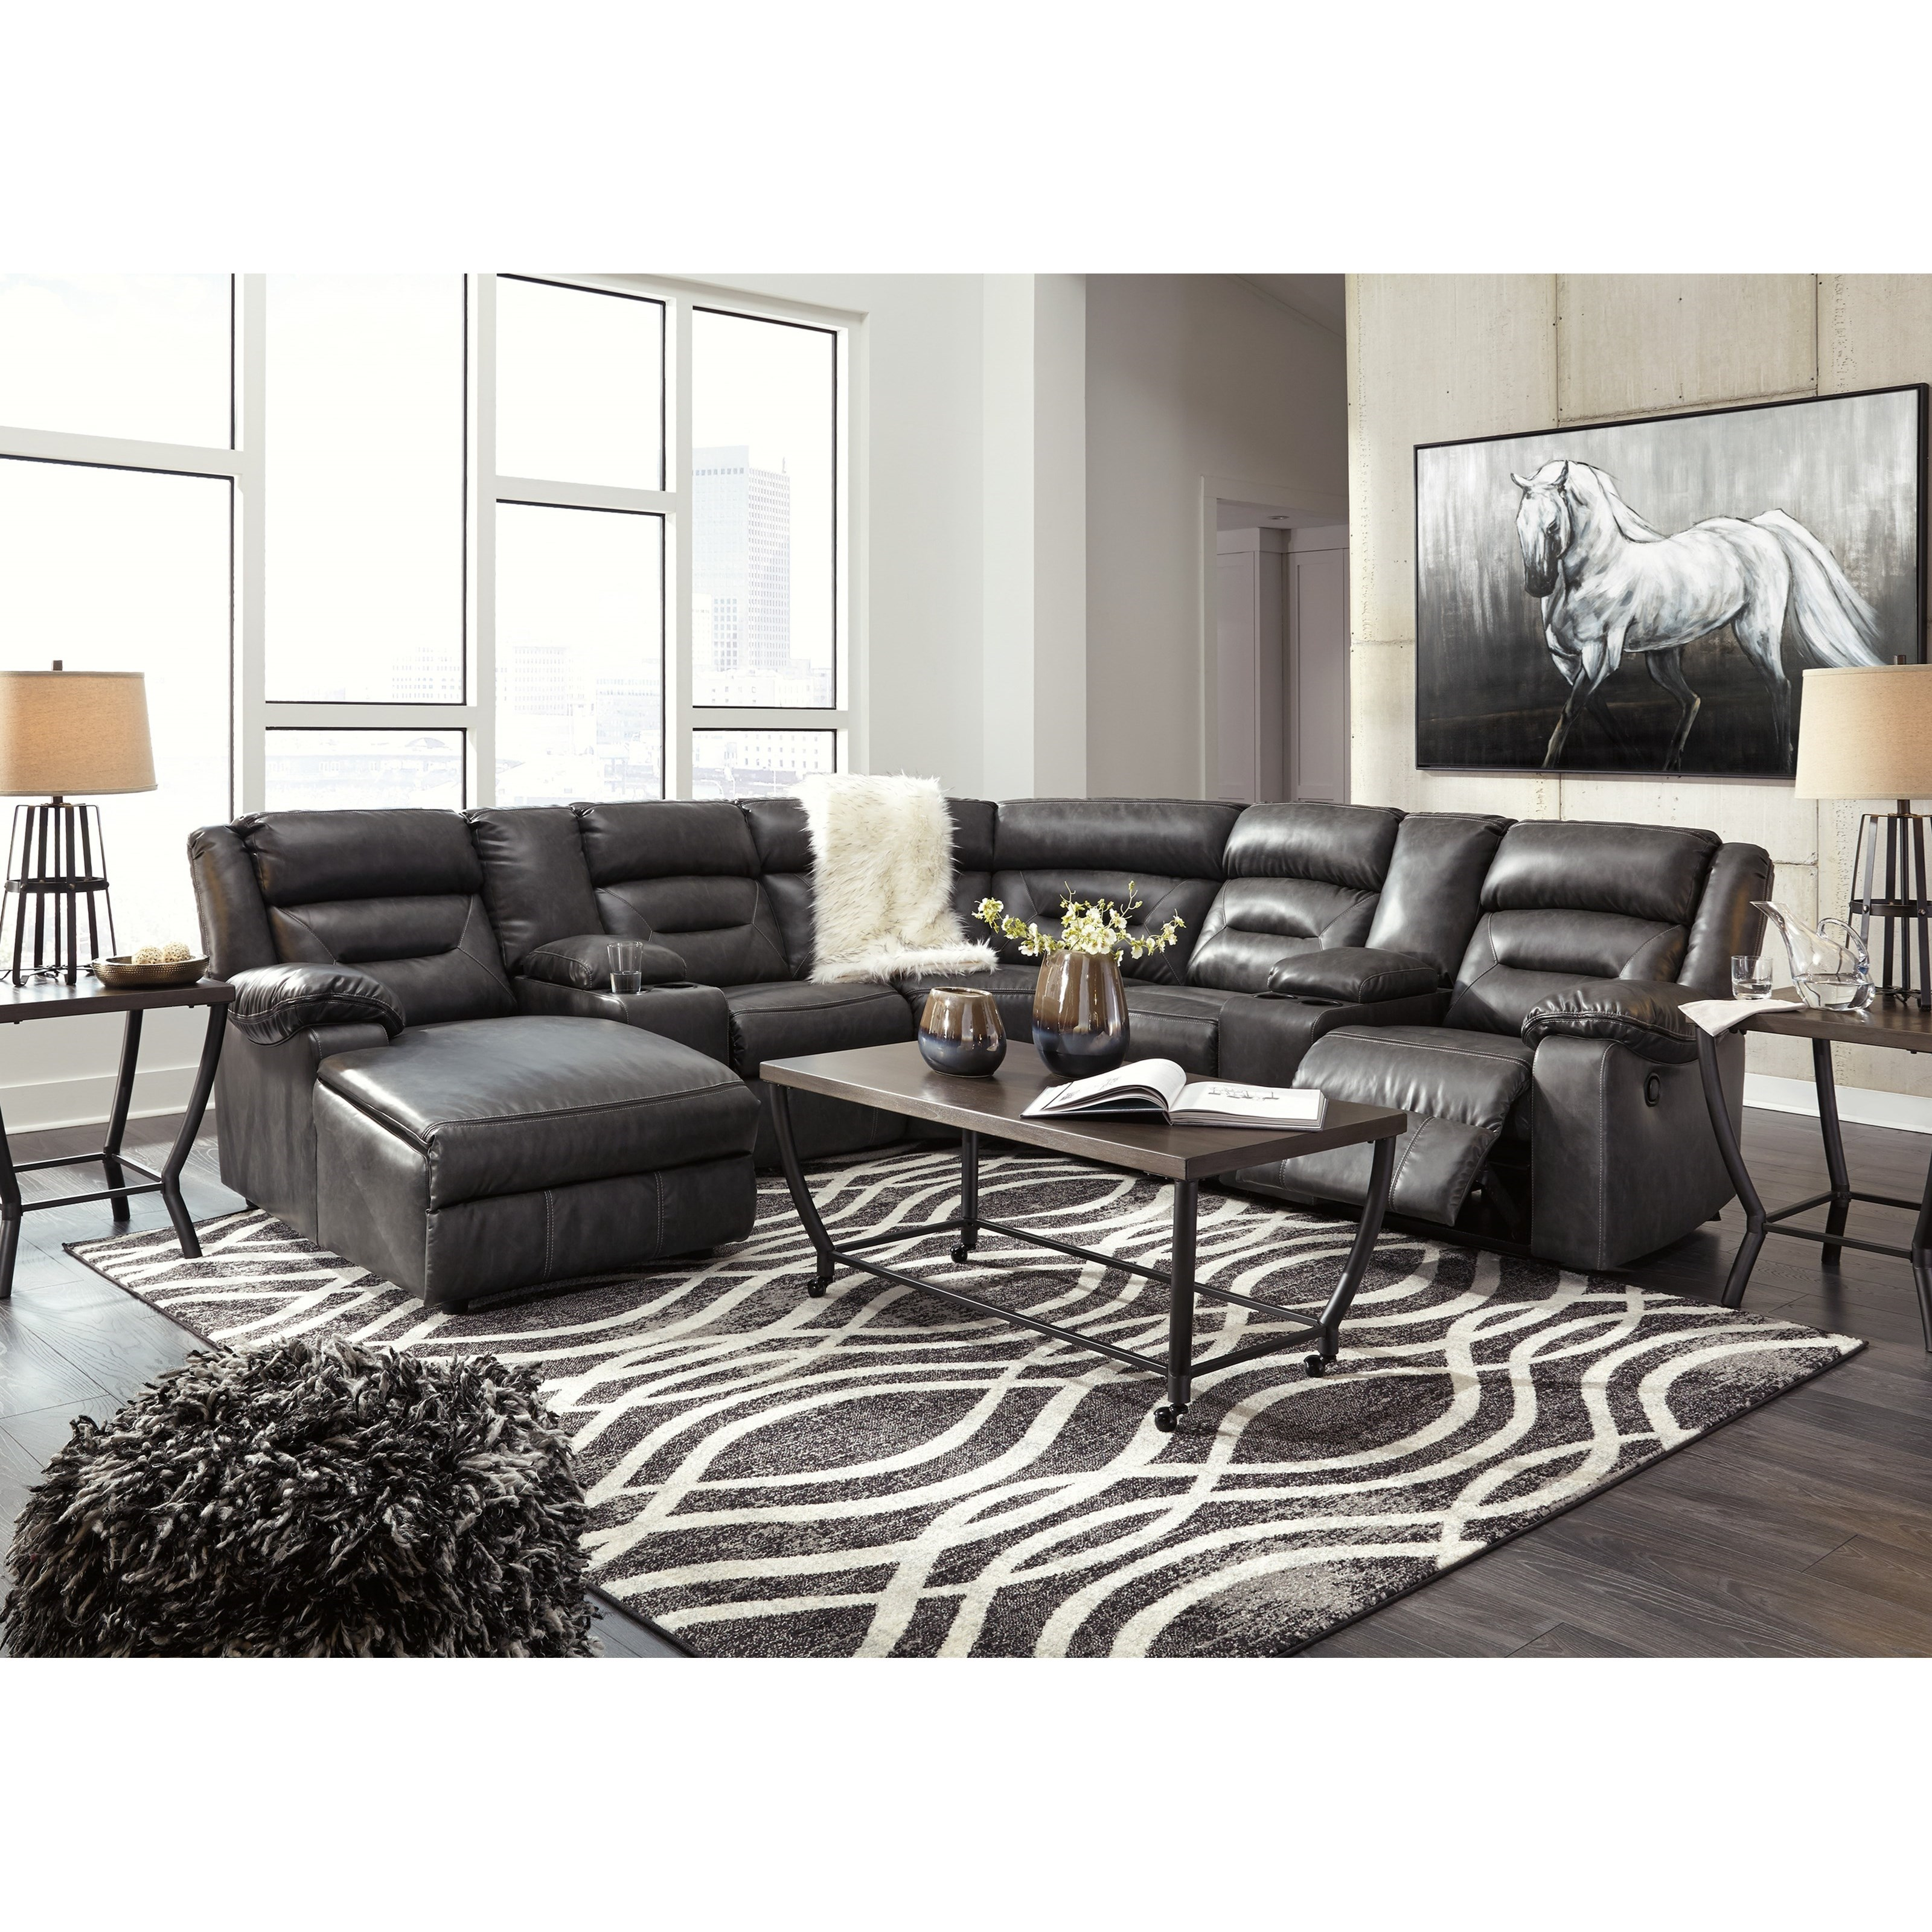 signature design by ashley coahoma 7 piece sectional with storage consoles royal furniture. Black Bedroom Furniture Sets. Home Design Ideas